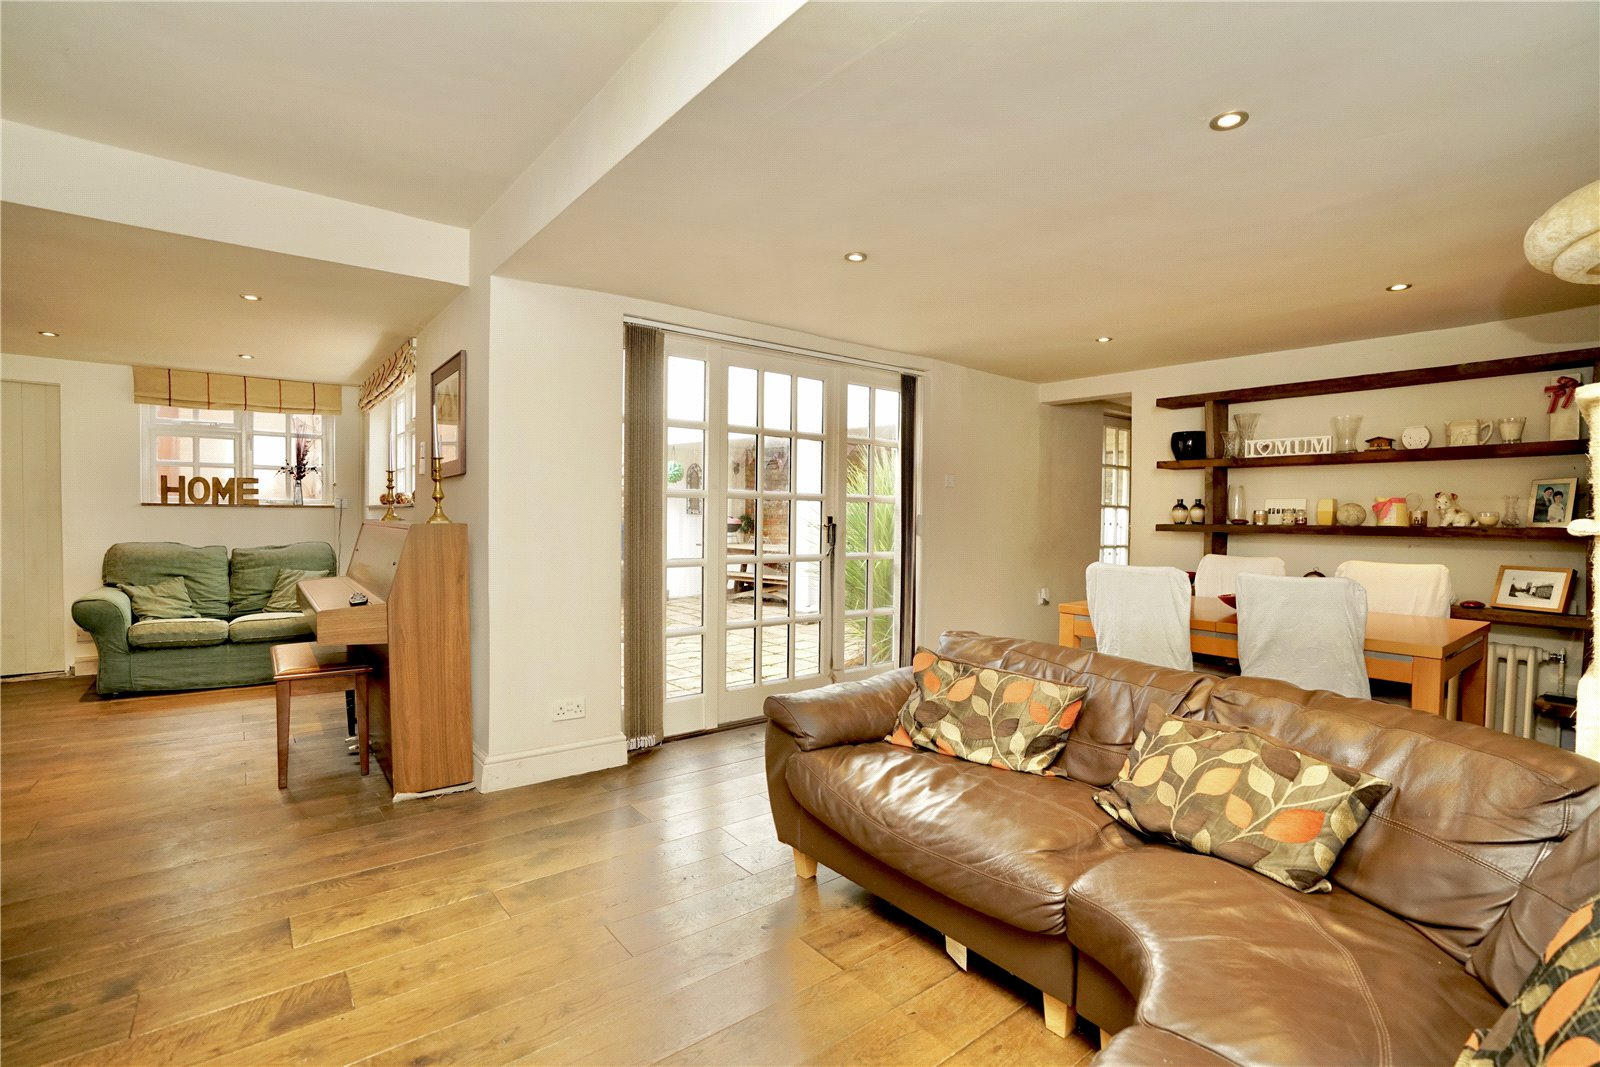 4 bed for sale in The Town, Great Staughton 1